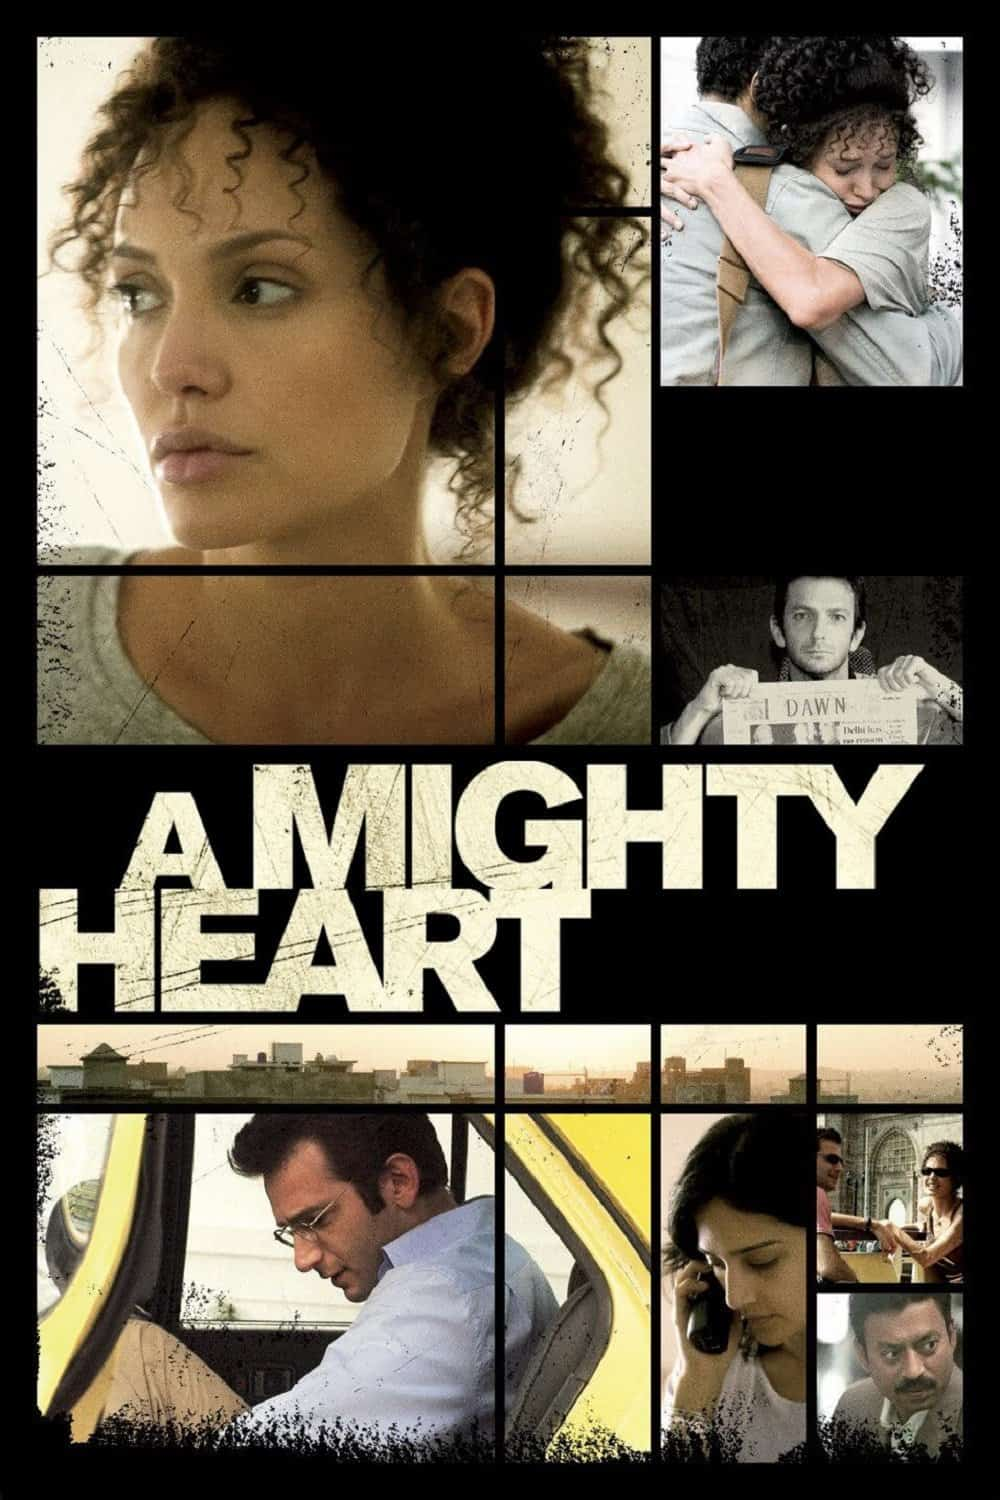 A Mighty Heart, 2007